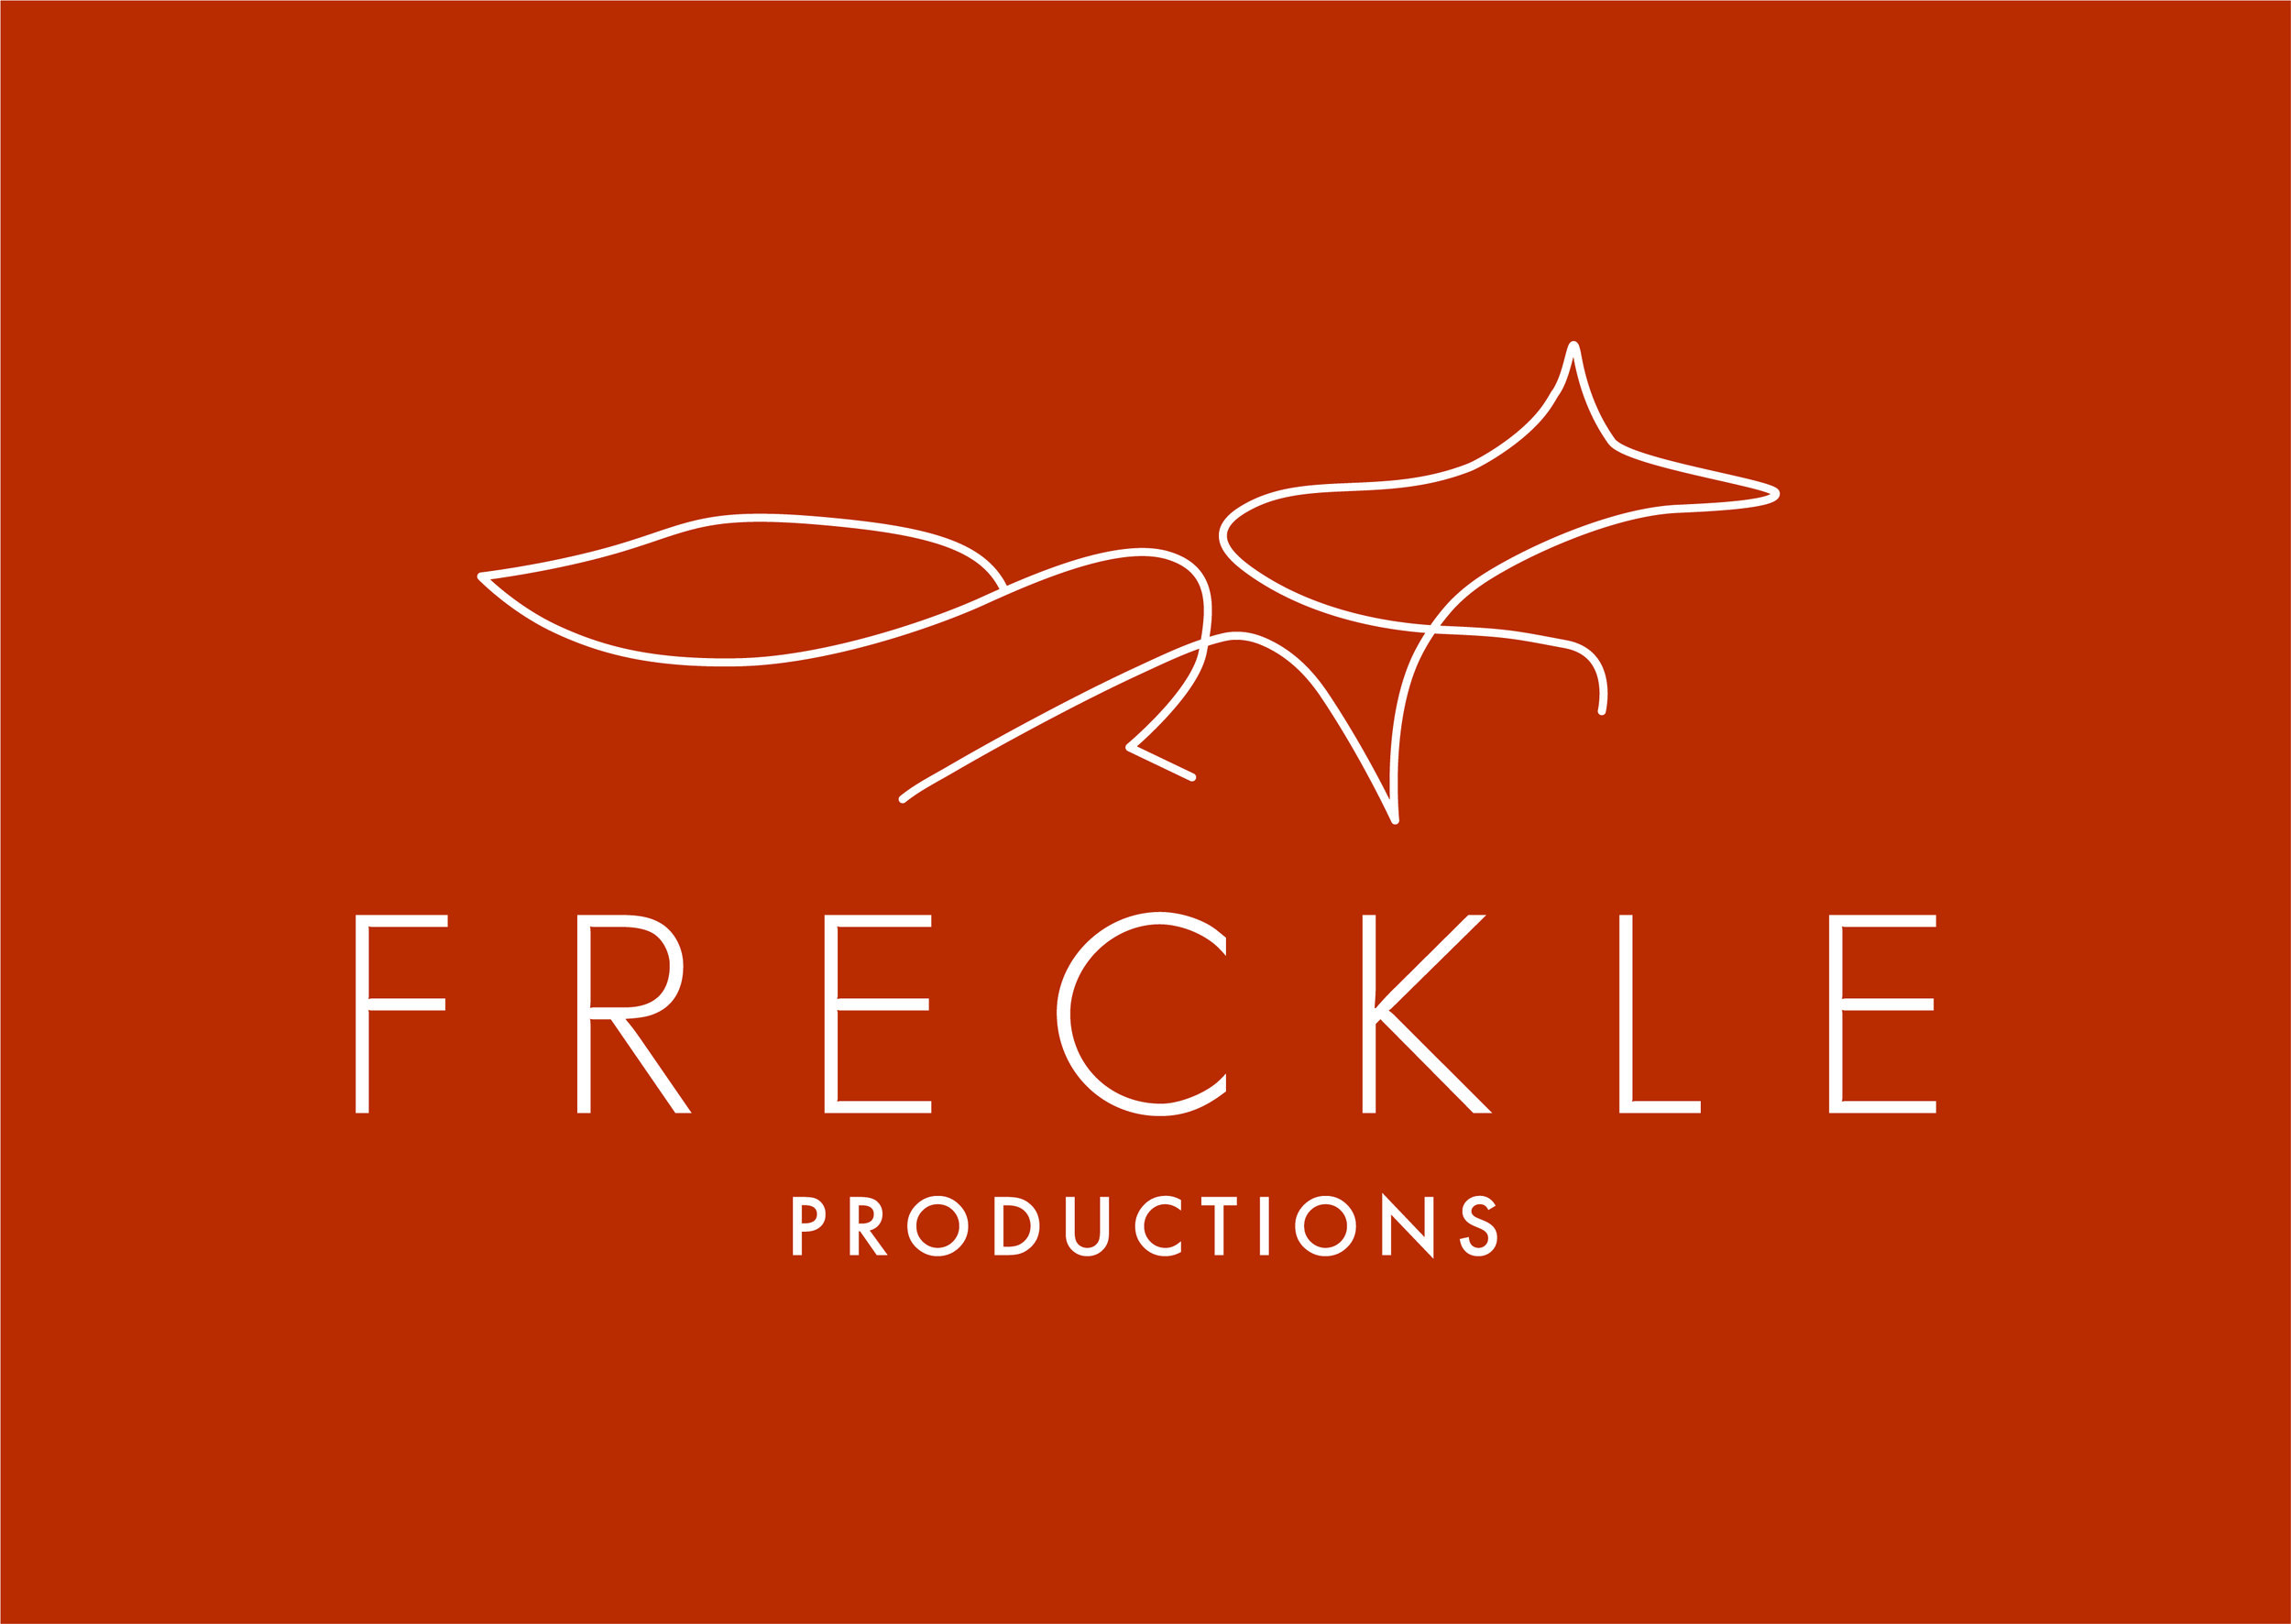 Freckle-logo-white_on_sienna.jpg